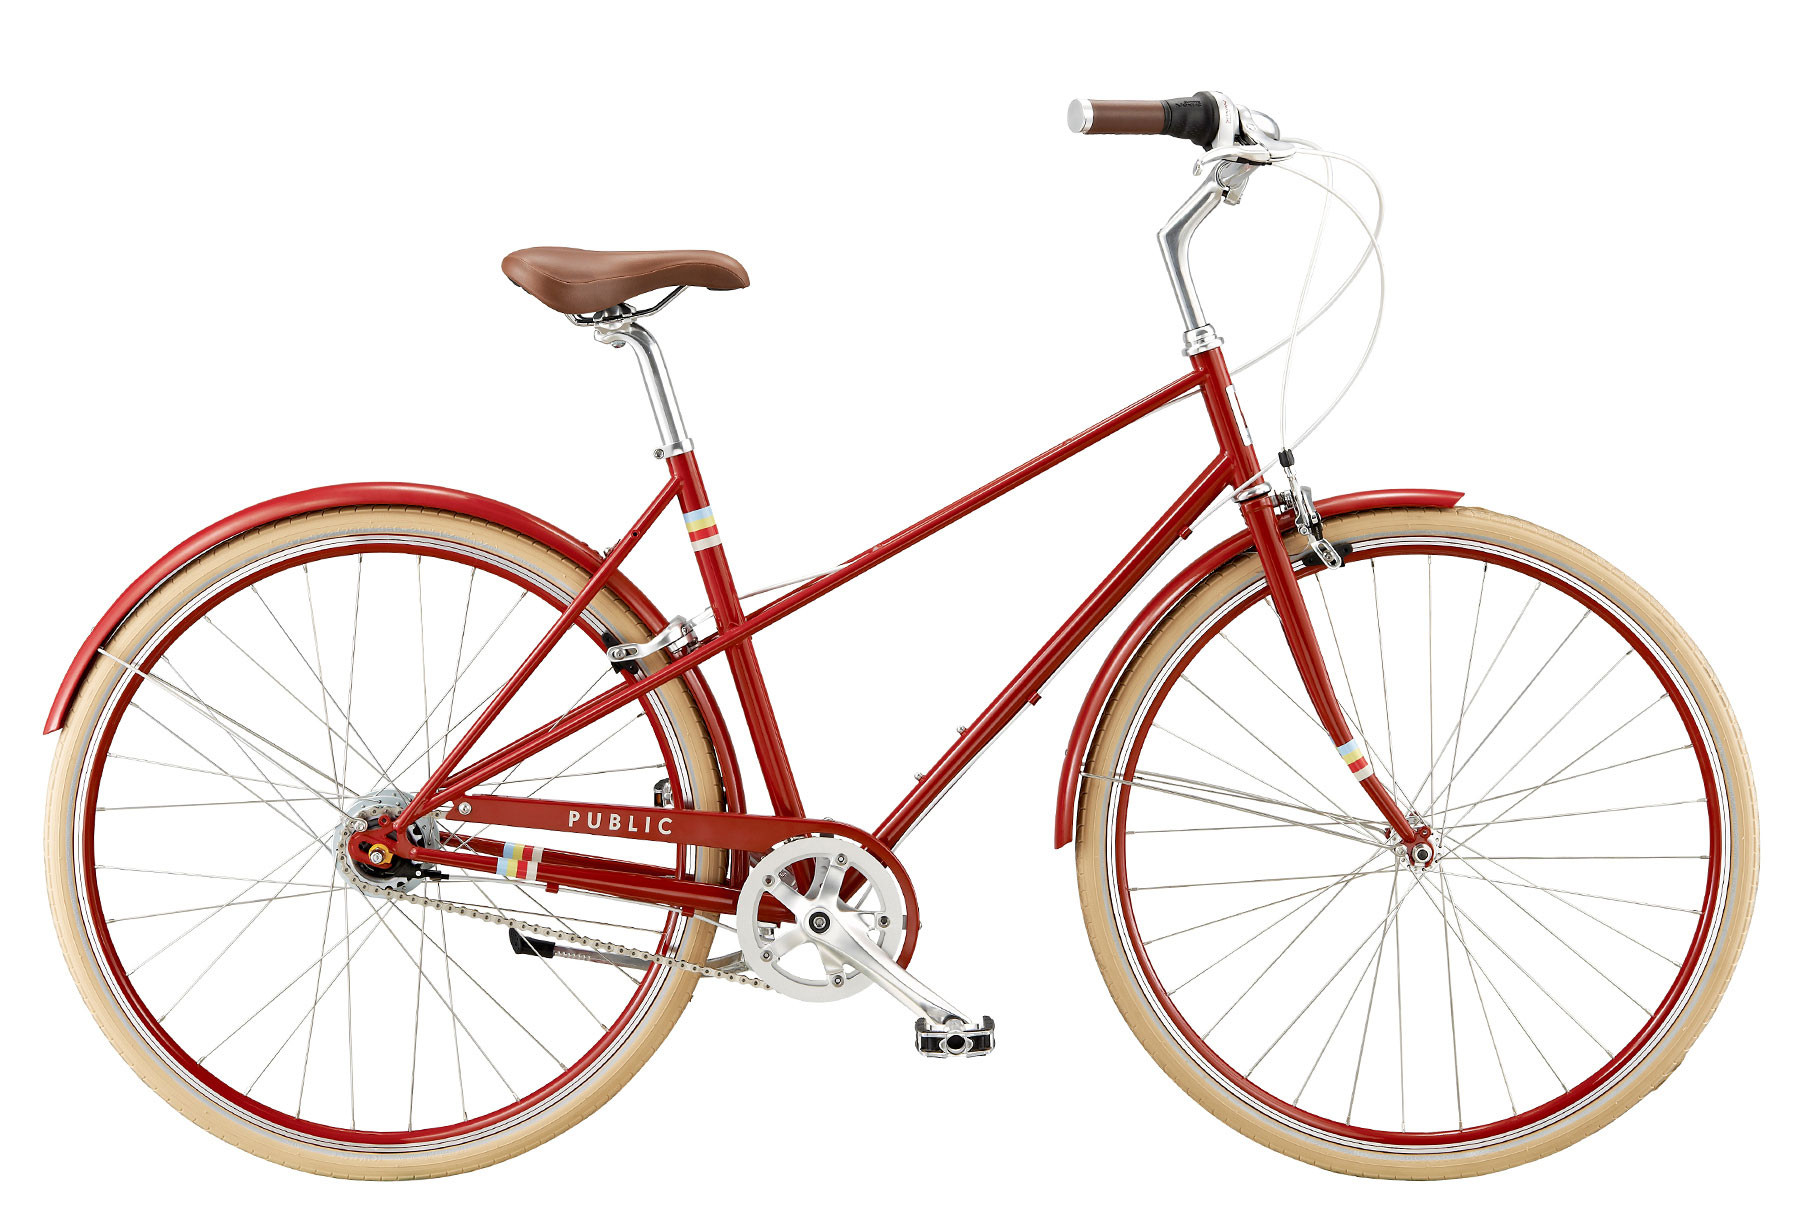 Shop PUBLIC M8i Mixte Commuter Bike from PUBLIC Bikes